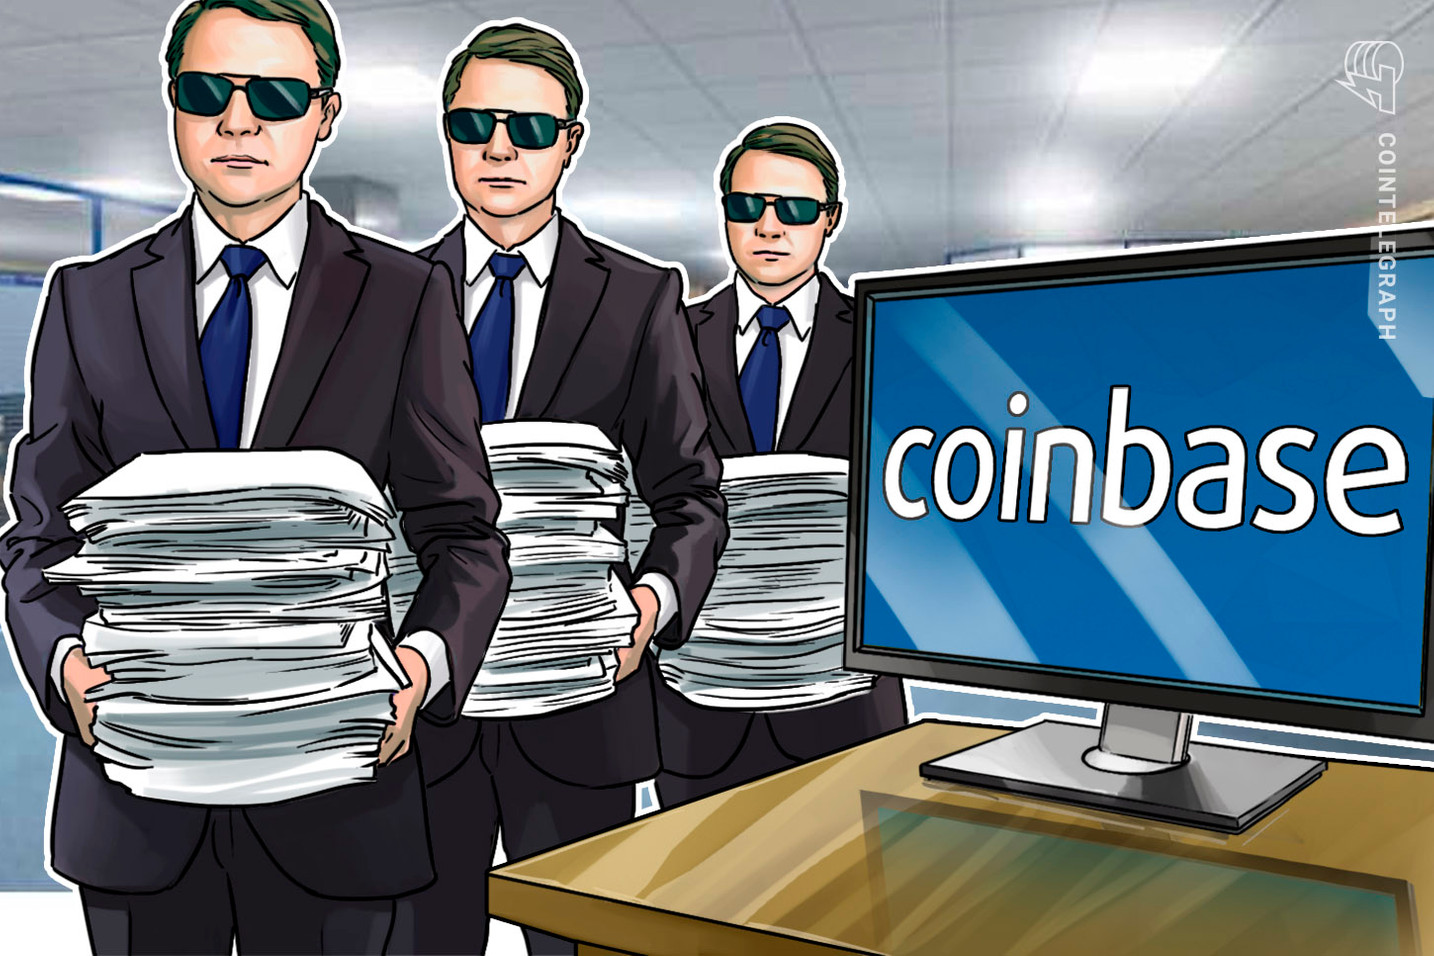 Coinbase CEO: Ex-Hacking Team Neutrino Members Will Transition Out of Company Roles